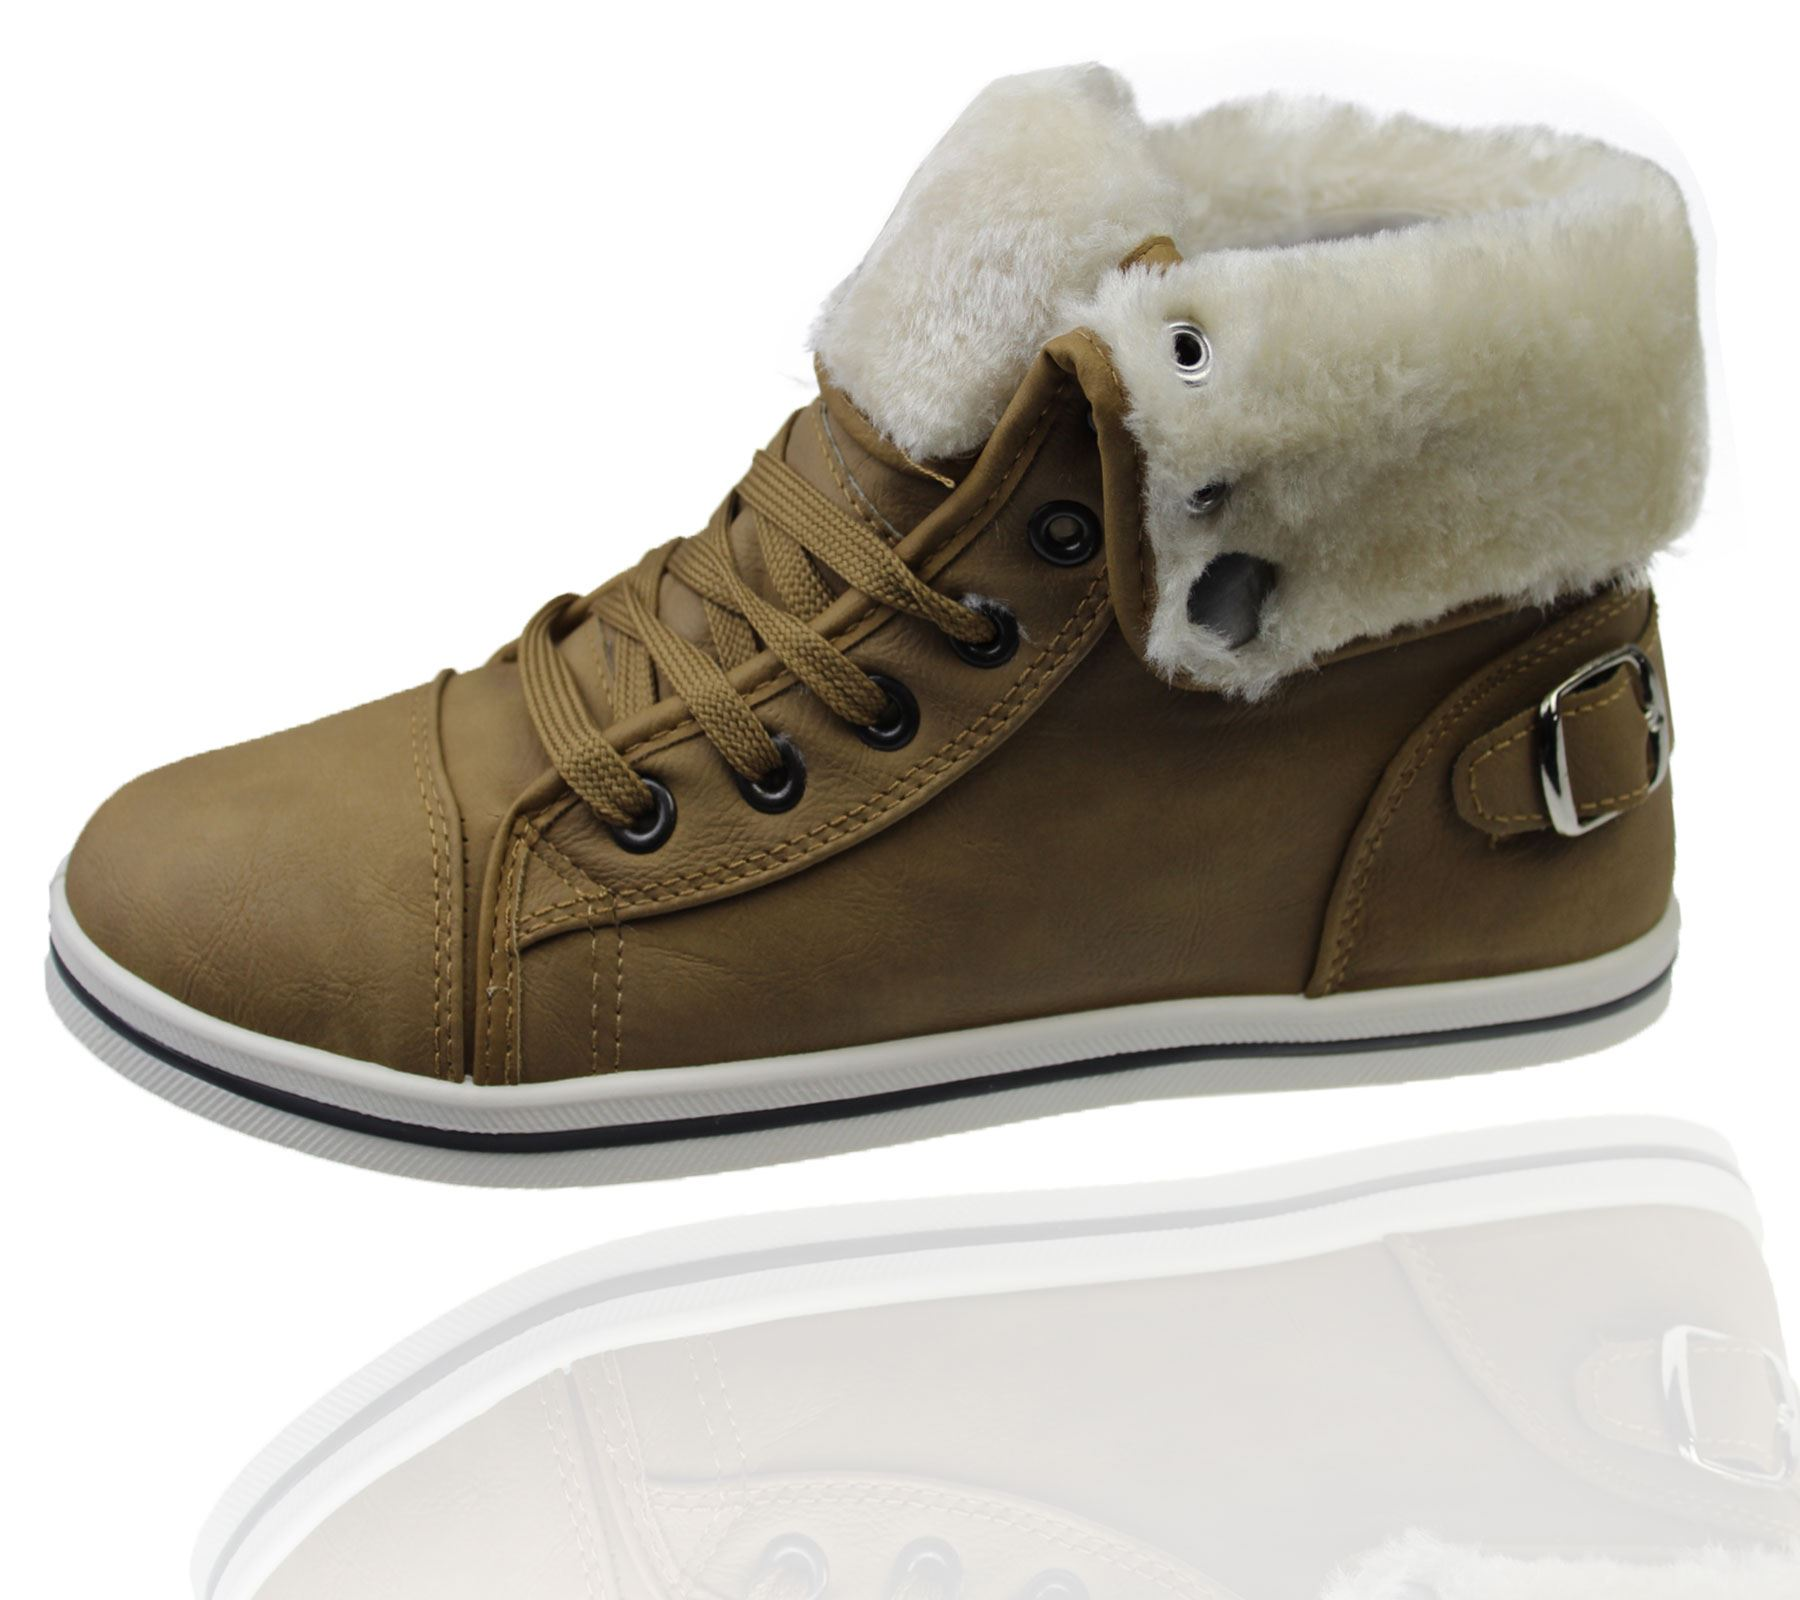 Girls-Boots-Womens-Warm-Lined-High-Top-Ankle-Trainer-Ladies-Winter-Shoes-Size miniatura 9